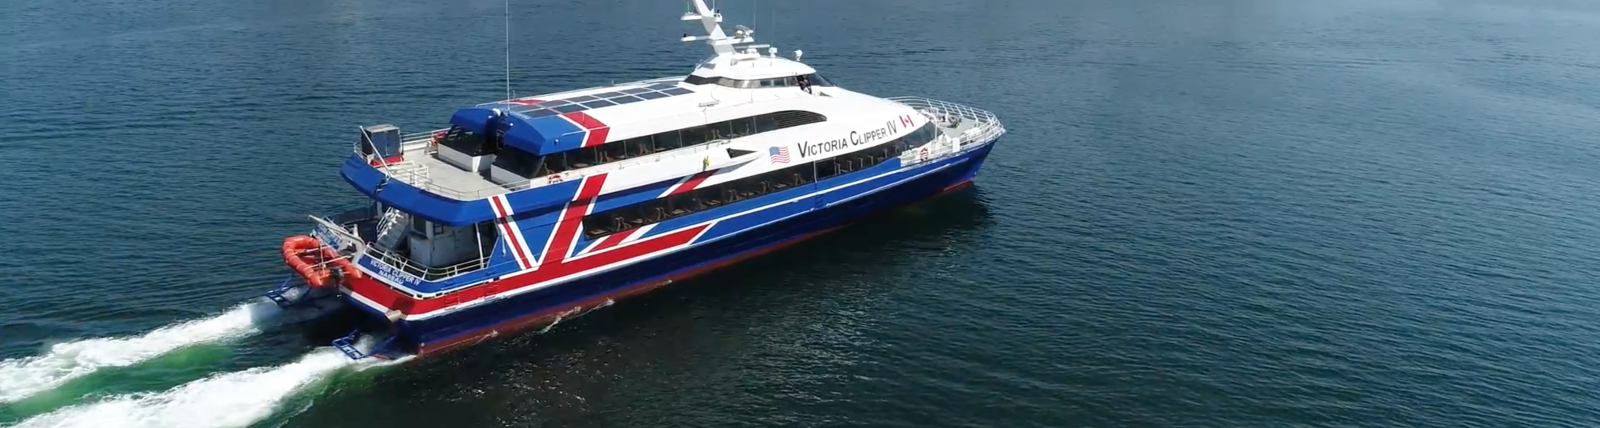 The Victoria Clipper IV in Victoria's Inner Harbour